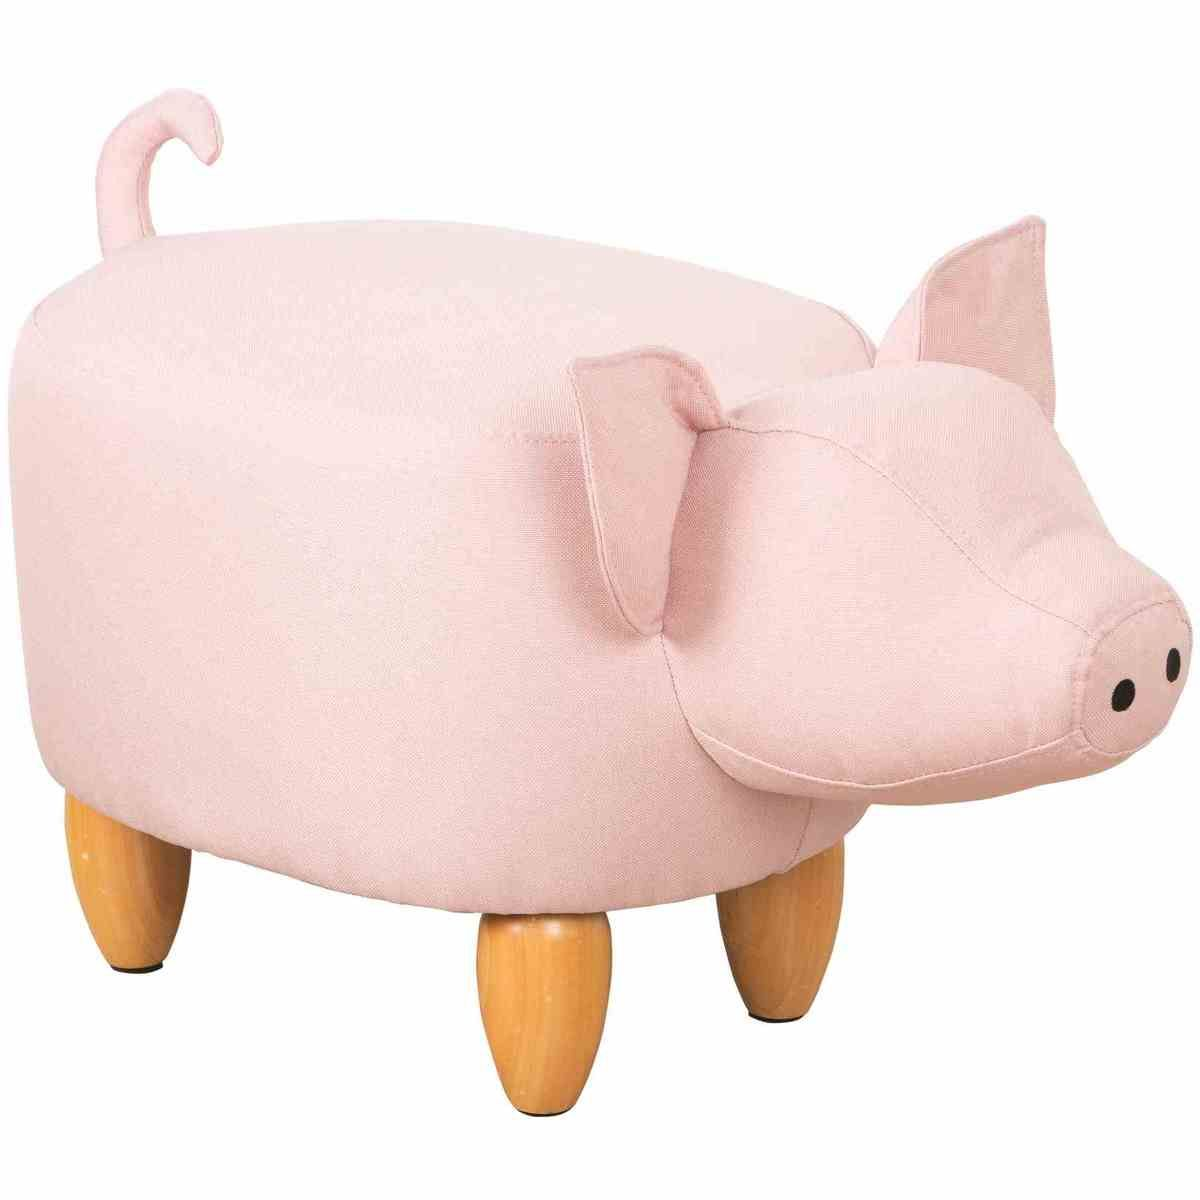 Kodu Upholstered Pig Ottoman in 2019 | Kids stool, Toddler